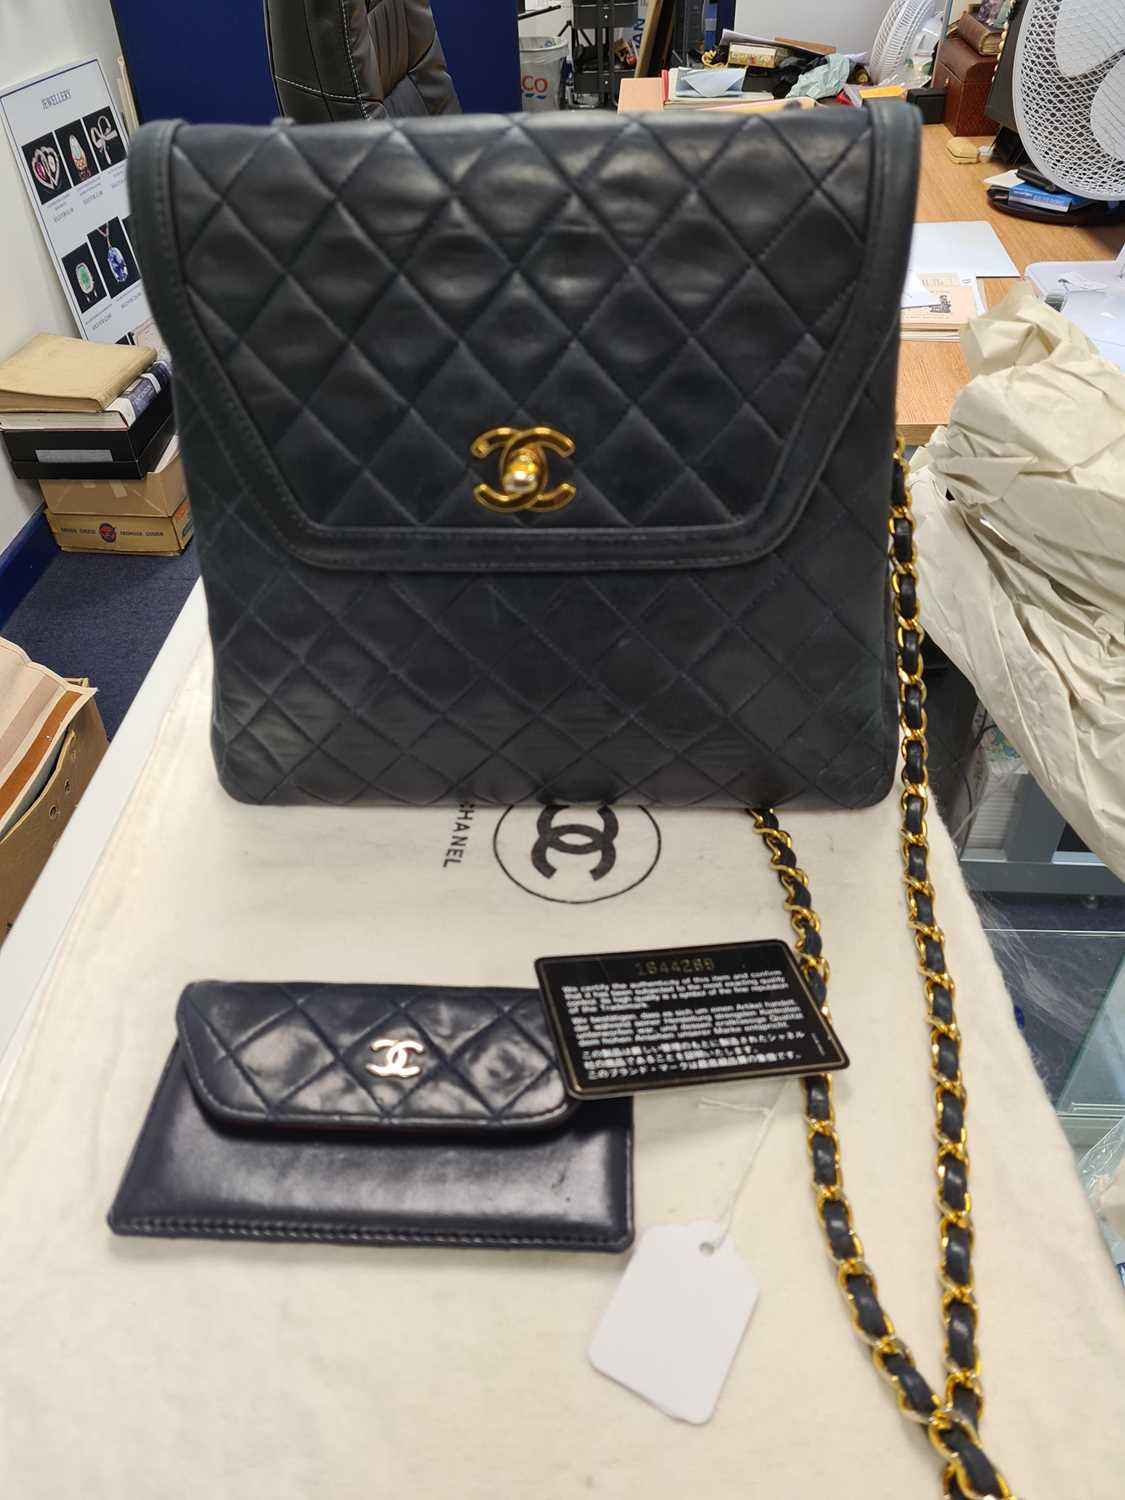 Chanel. A classic quilted leather handbag, of tapered square design, with gold tone CC logo clasp, - Image 26 of 26